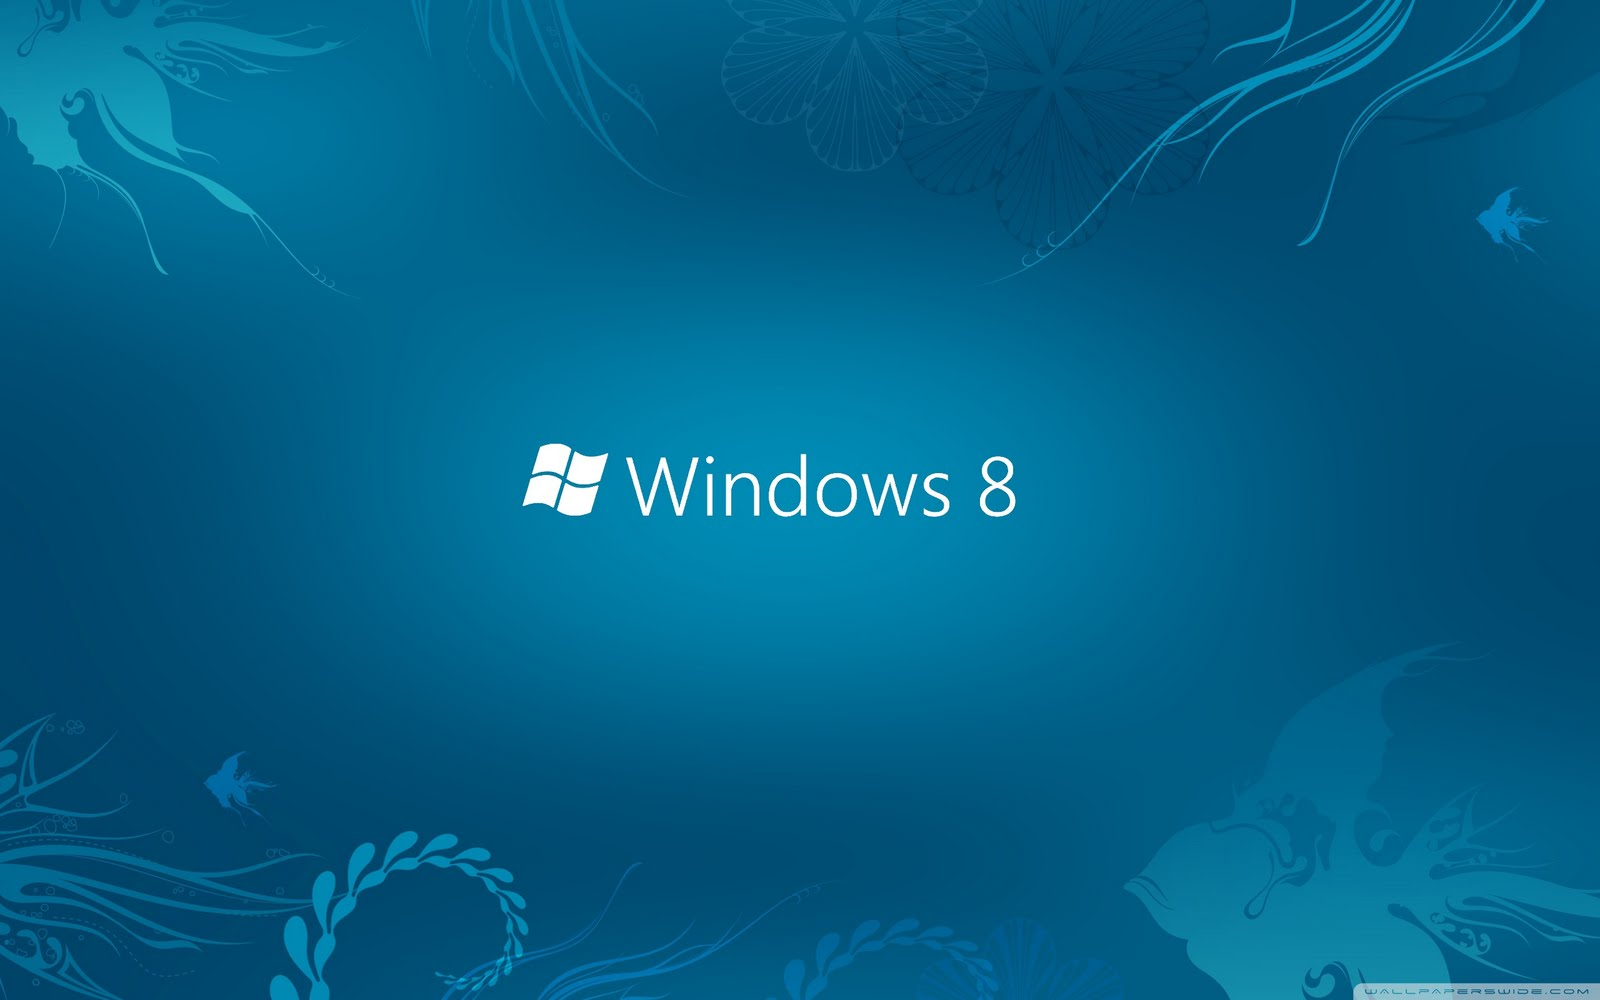 Top 12 Cool Windows 8 HD wallpapers for desktop backgrounds 8 1600x1000